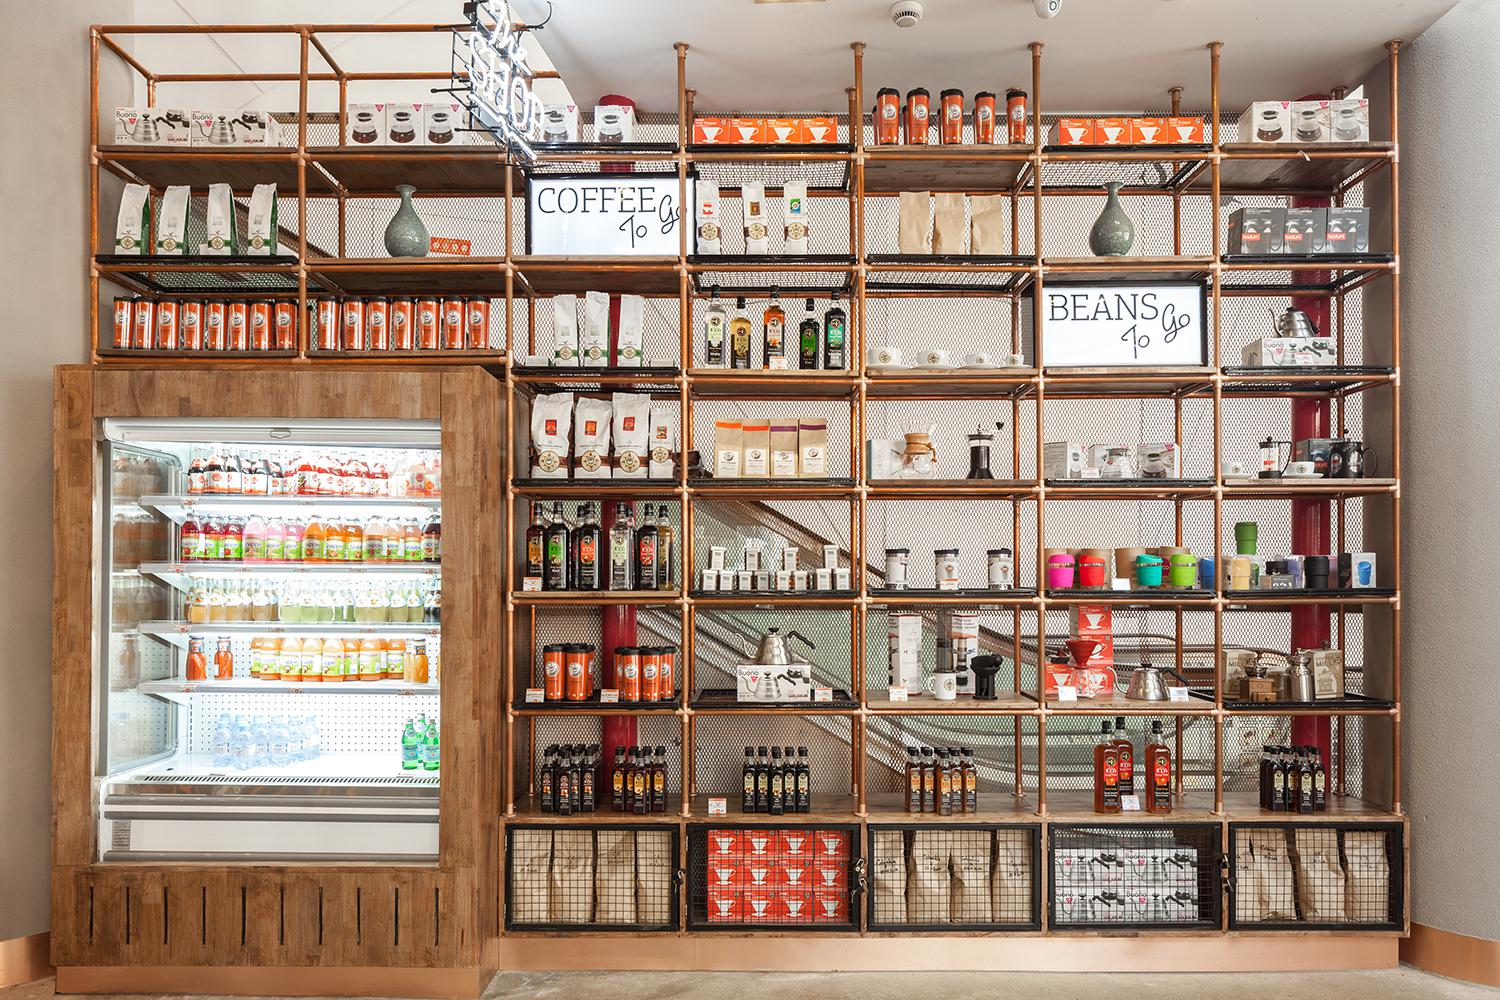 Workshop Shelving Units The Power Of Neat Product Display